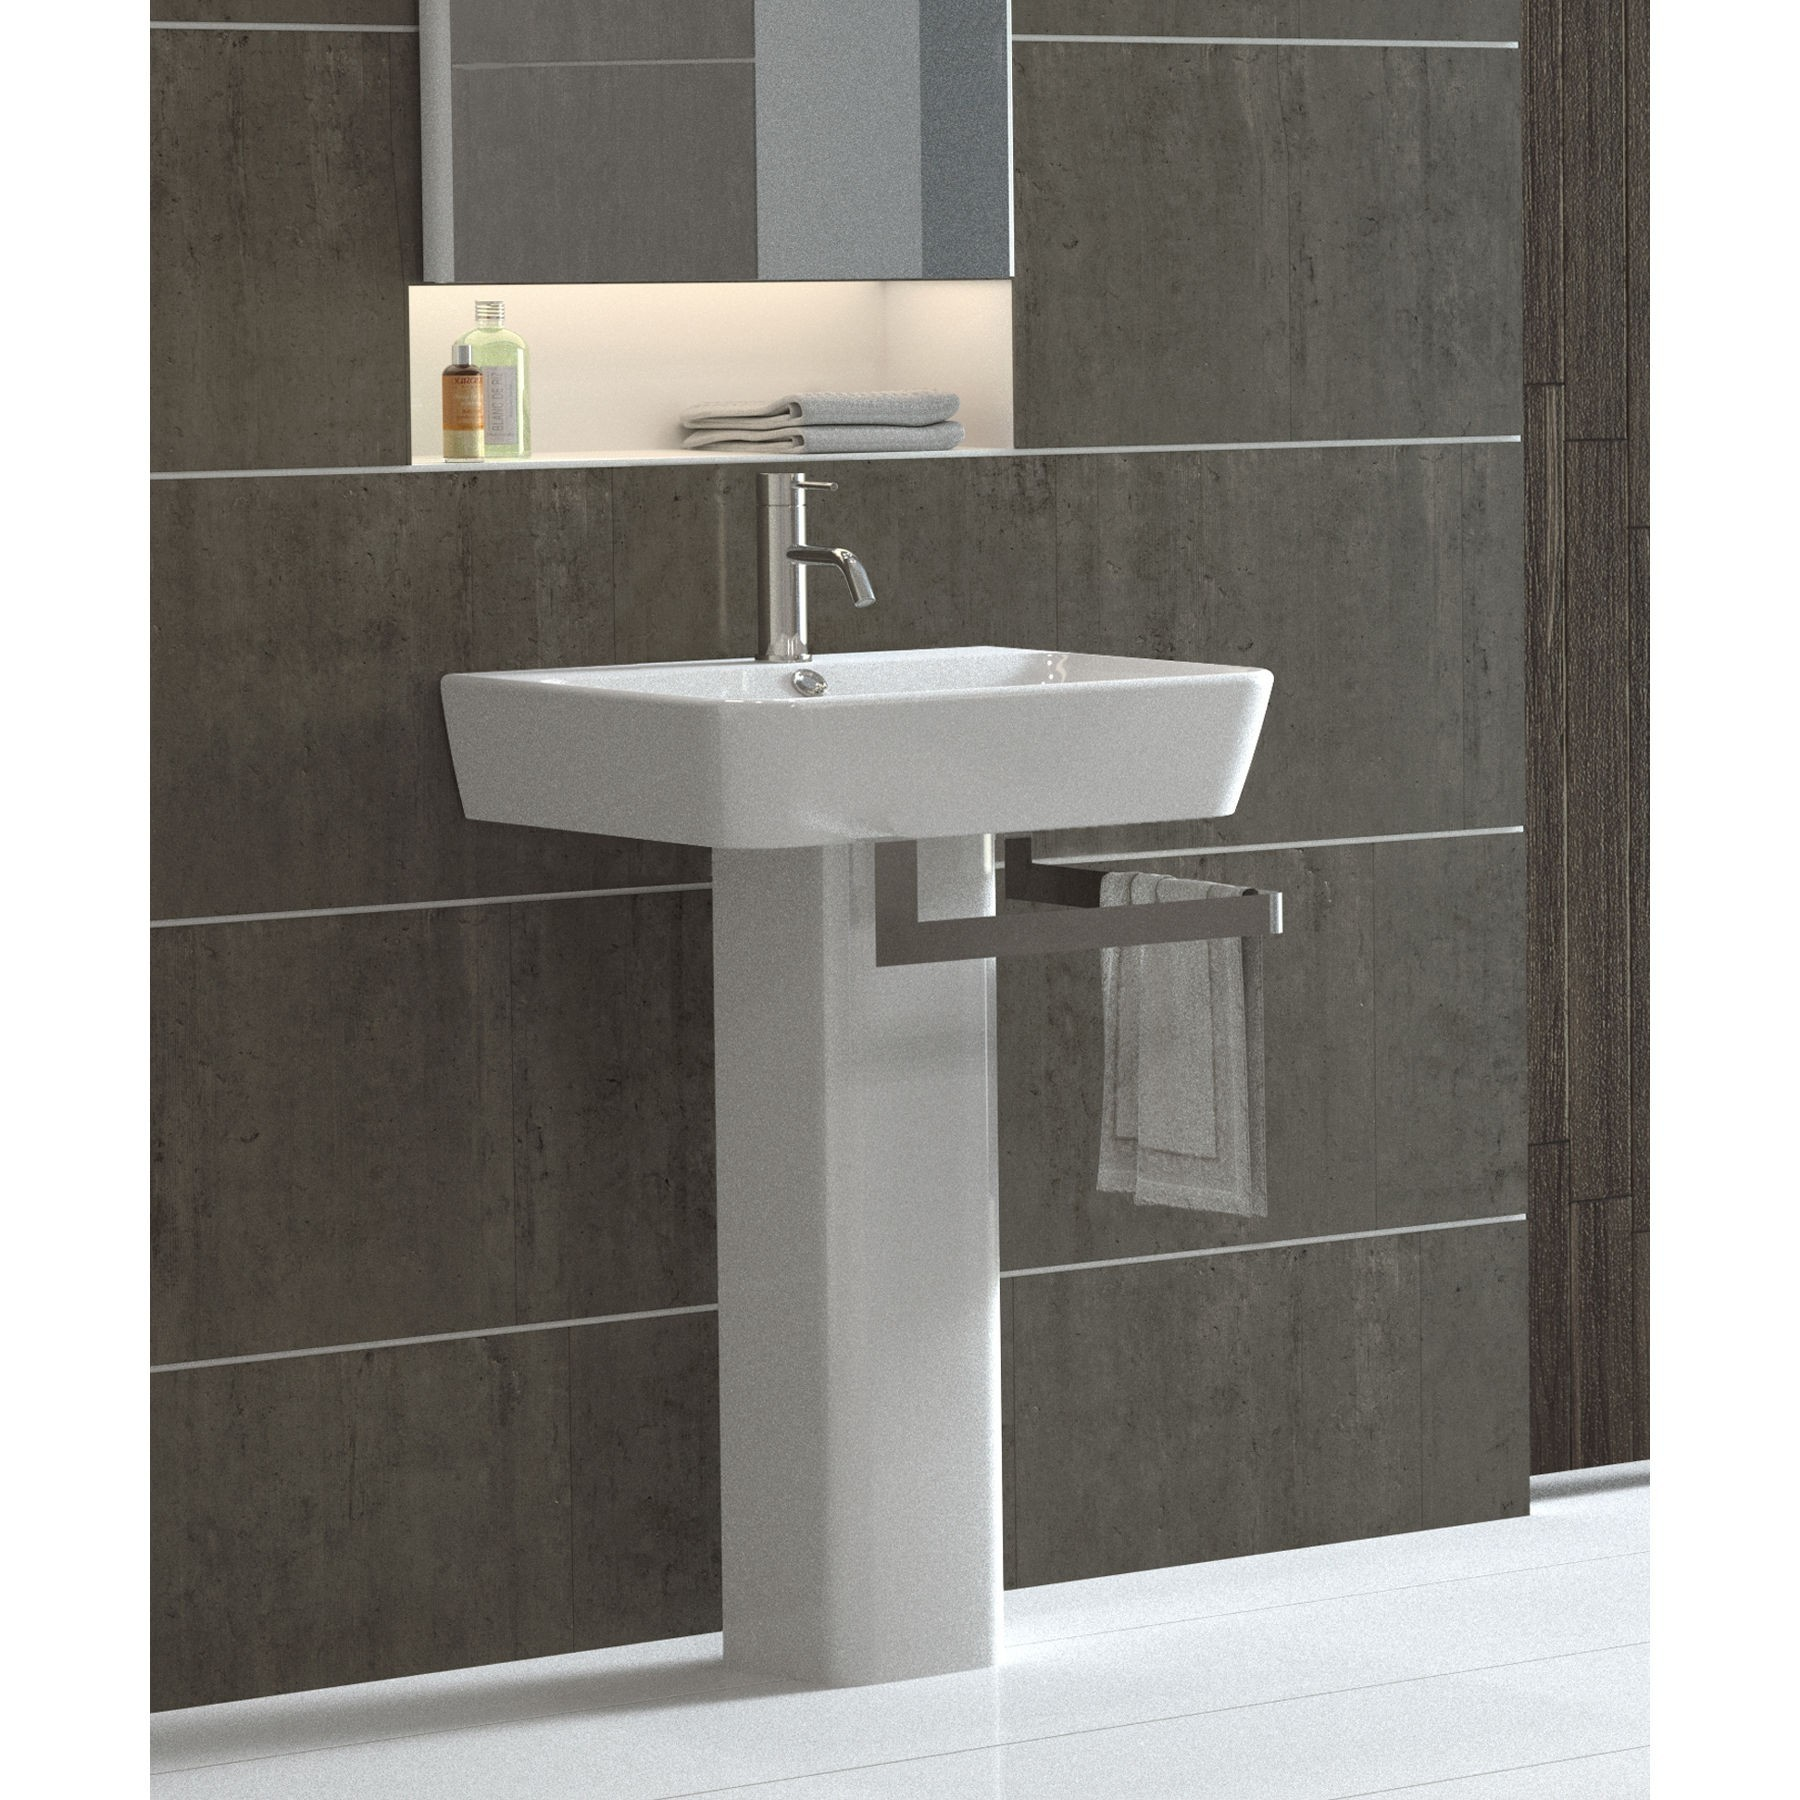 Gentil Modern Pedestal Sinks For Small Bathrooms